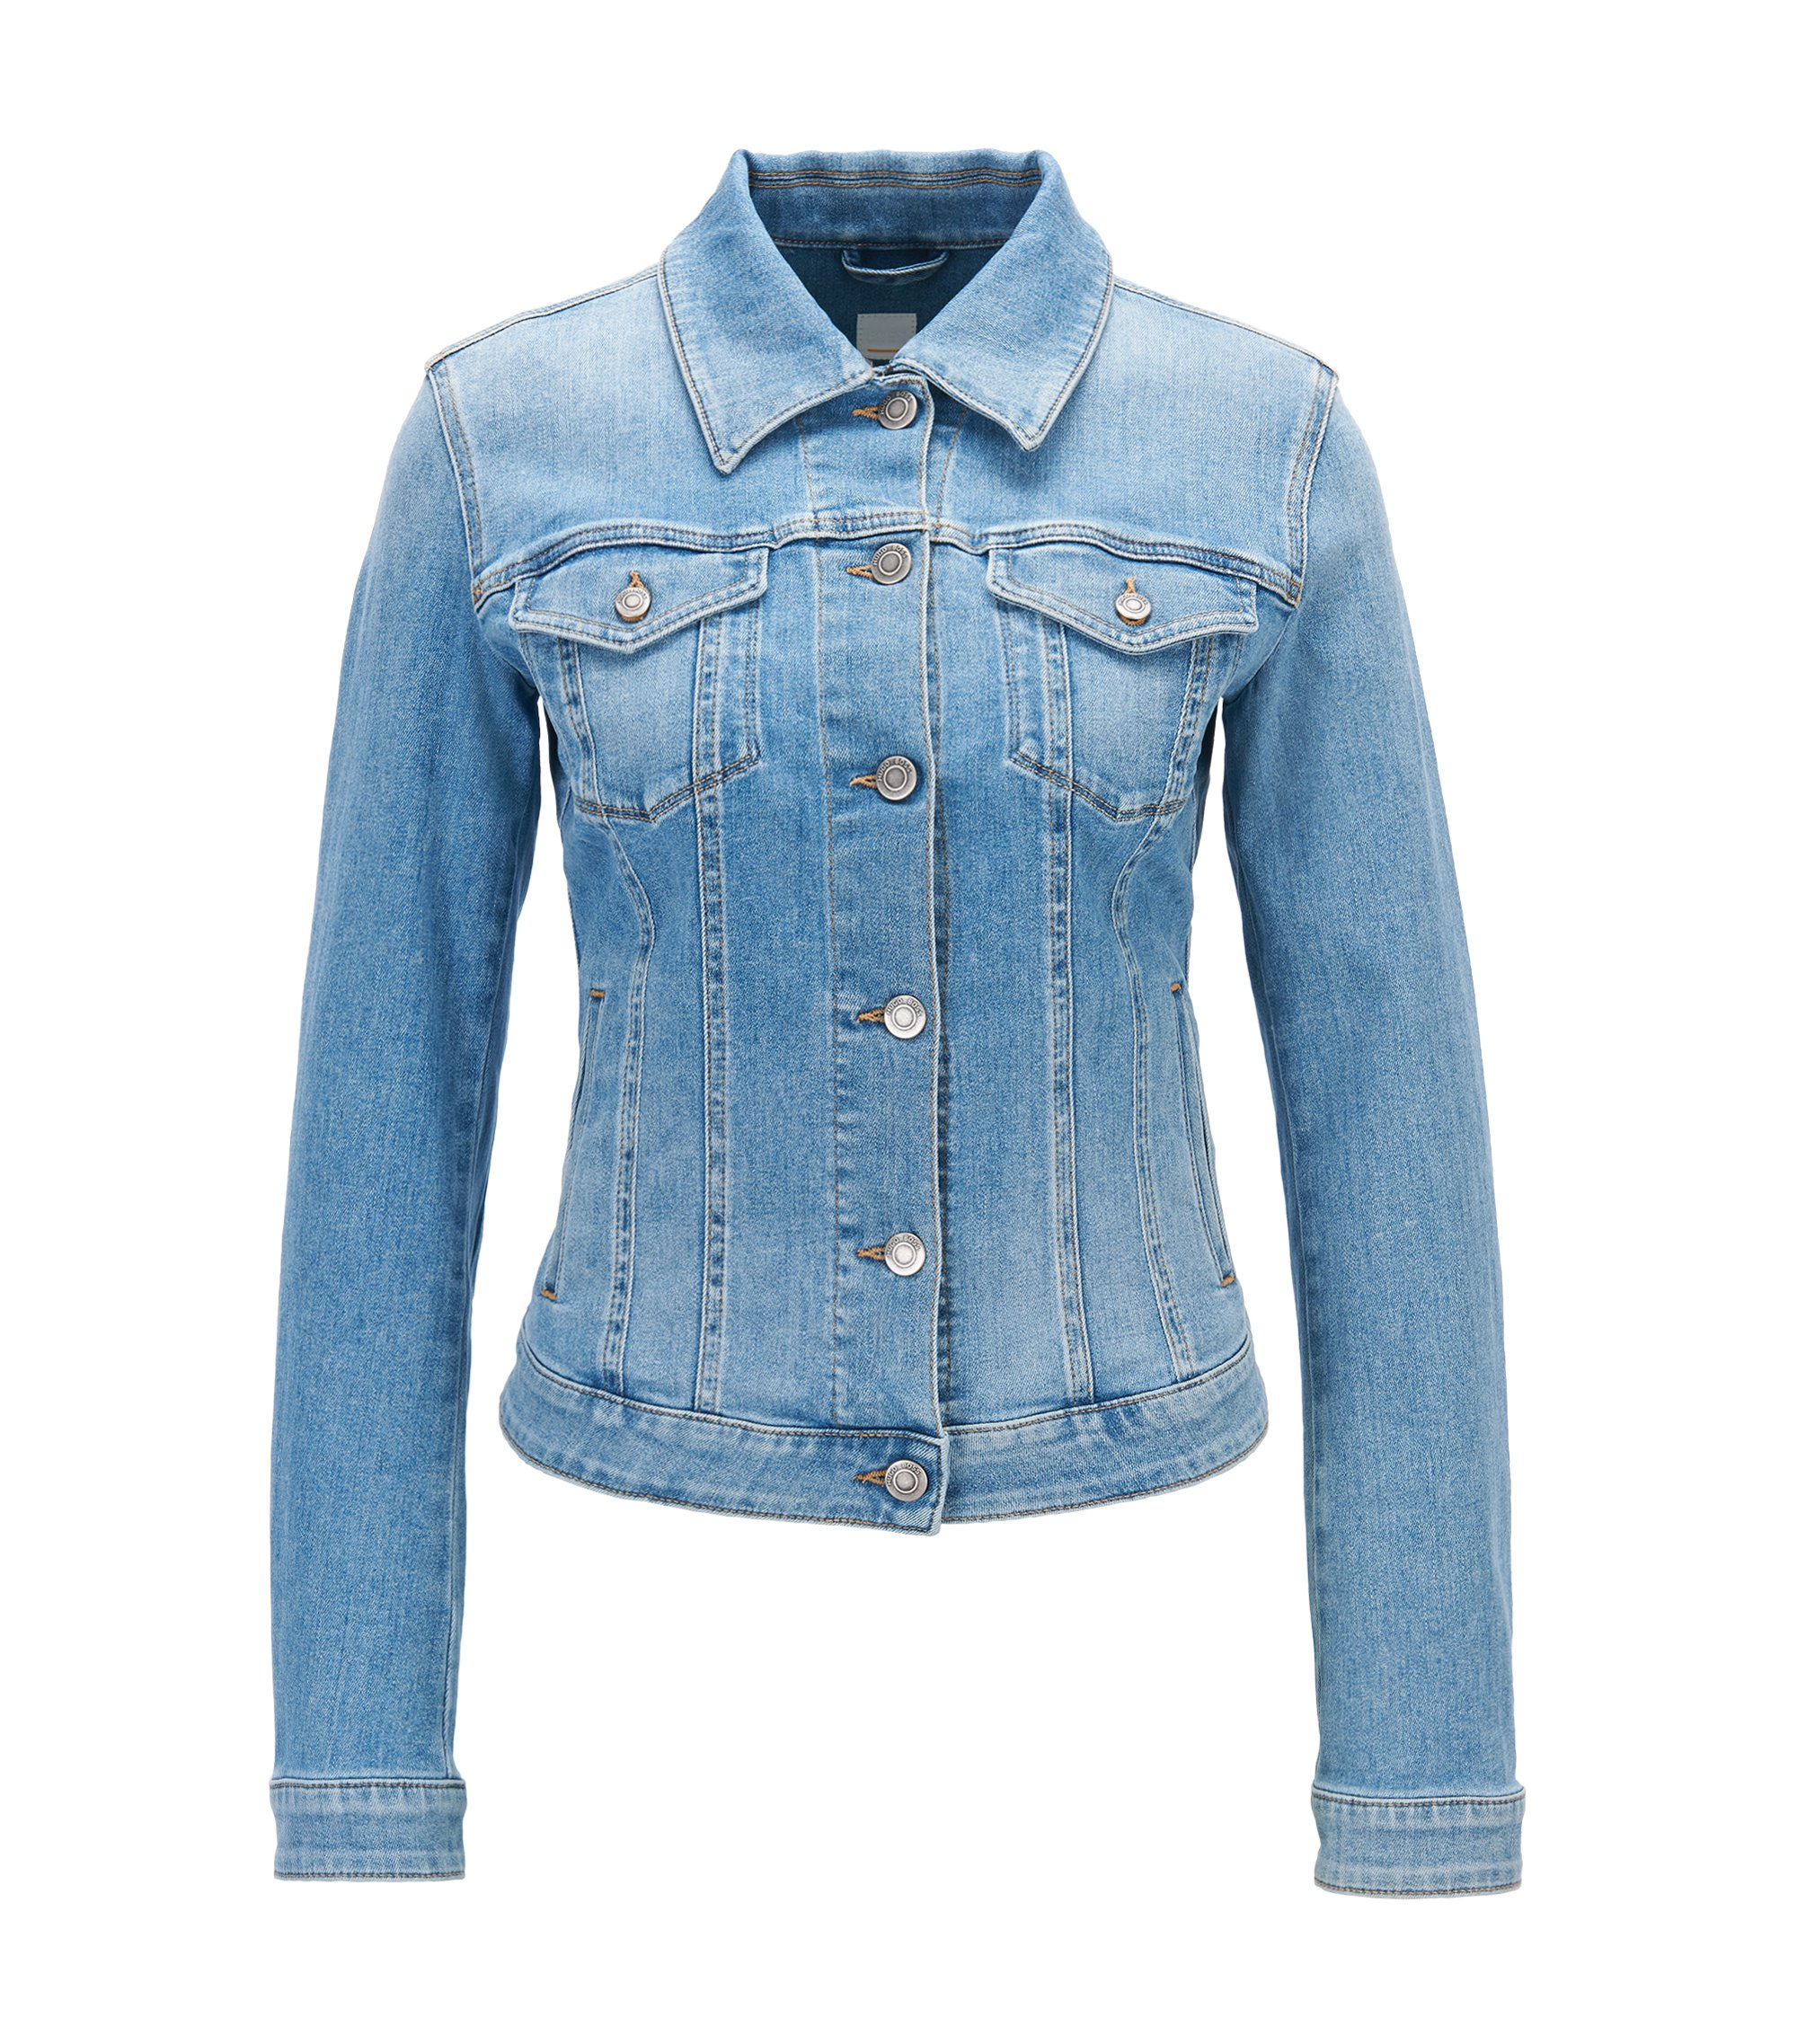 Jeansjacke aus Stretch- Denim mit Used-Effekten, Blau